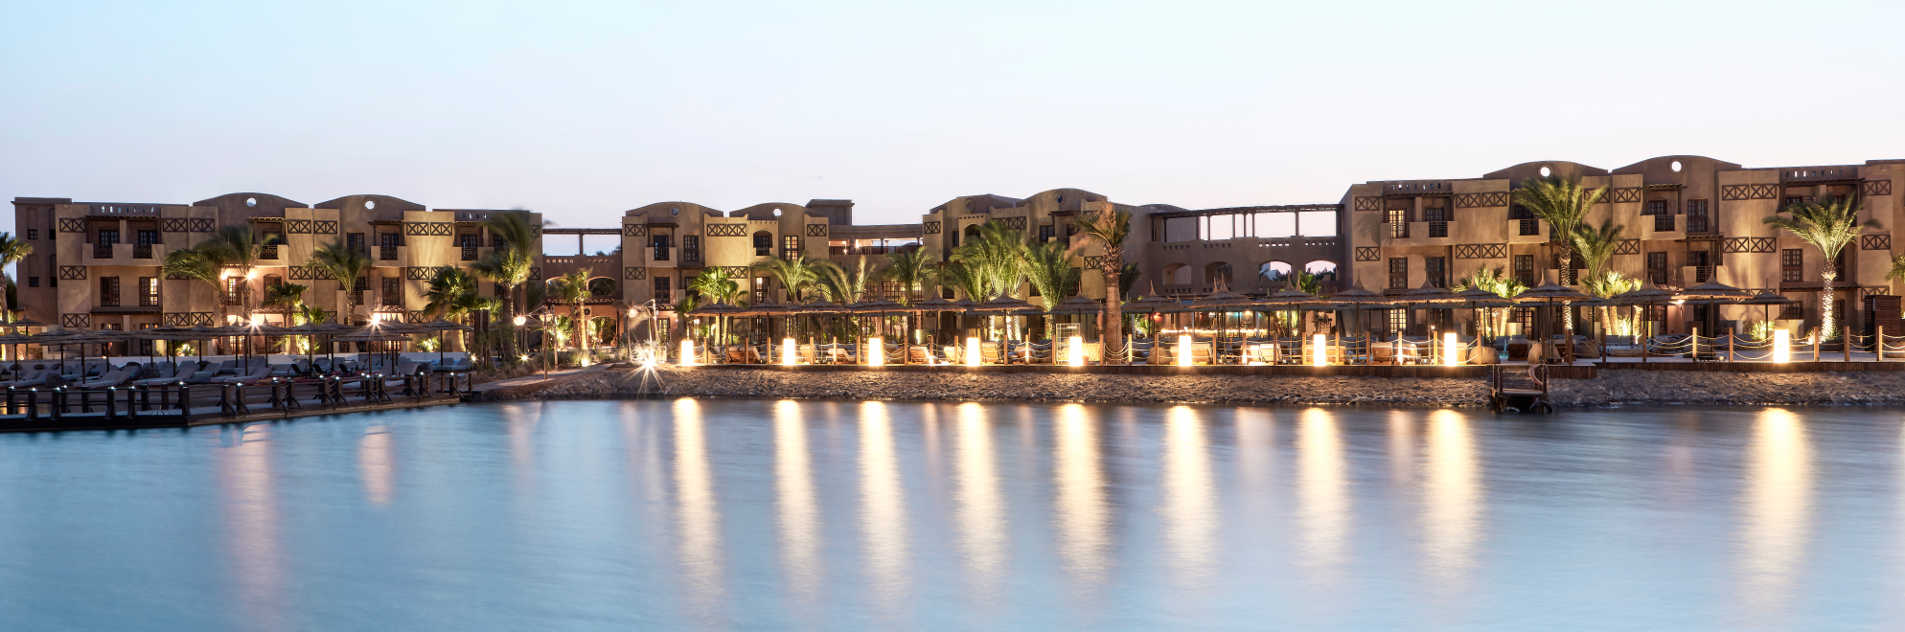 Cook's Club hotel opening soon in El Gouna